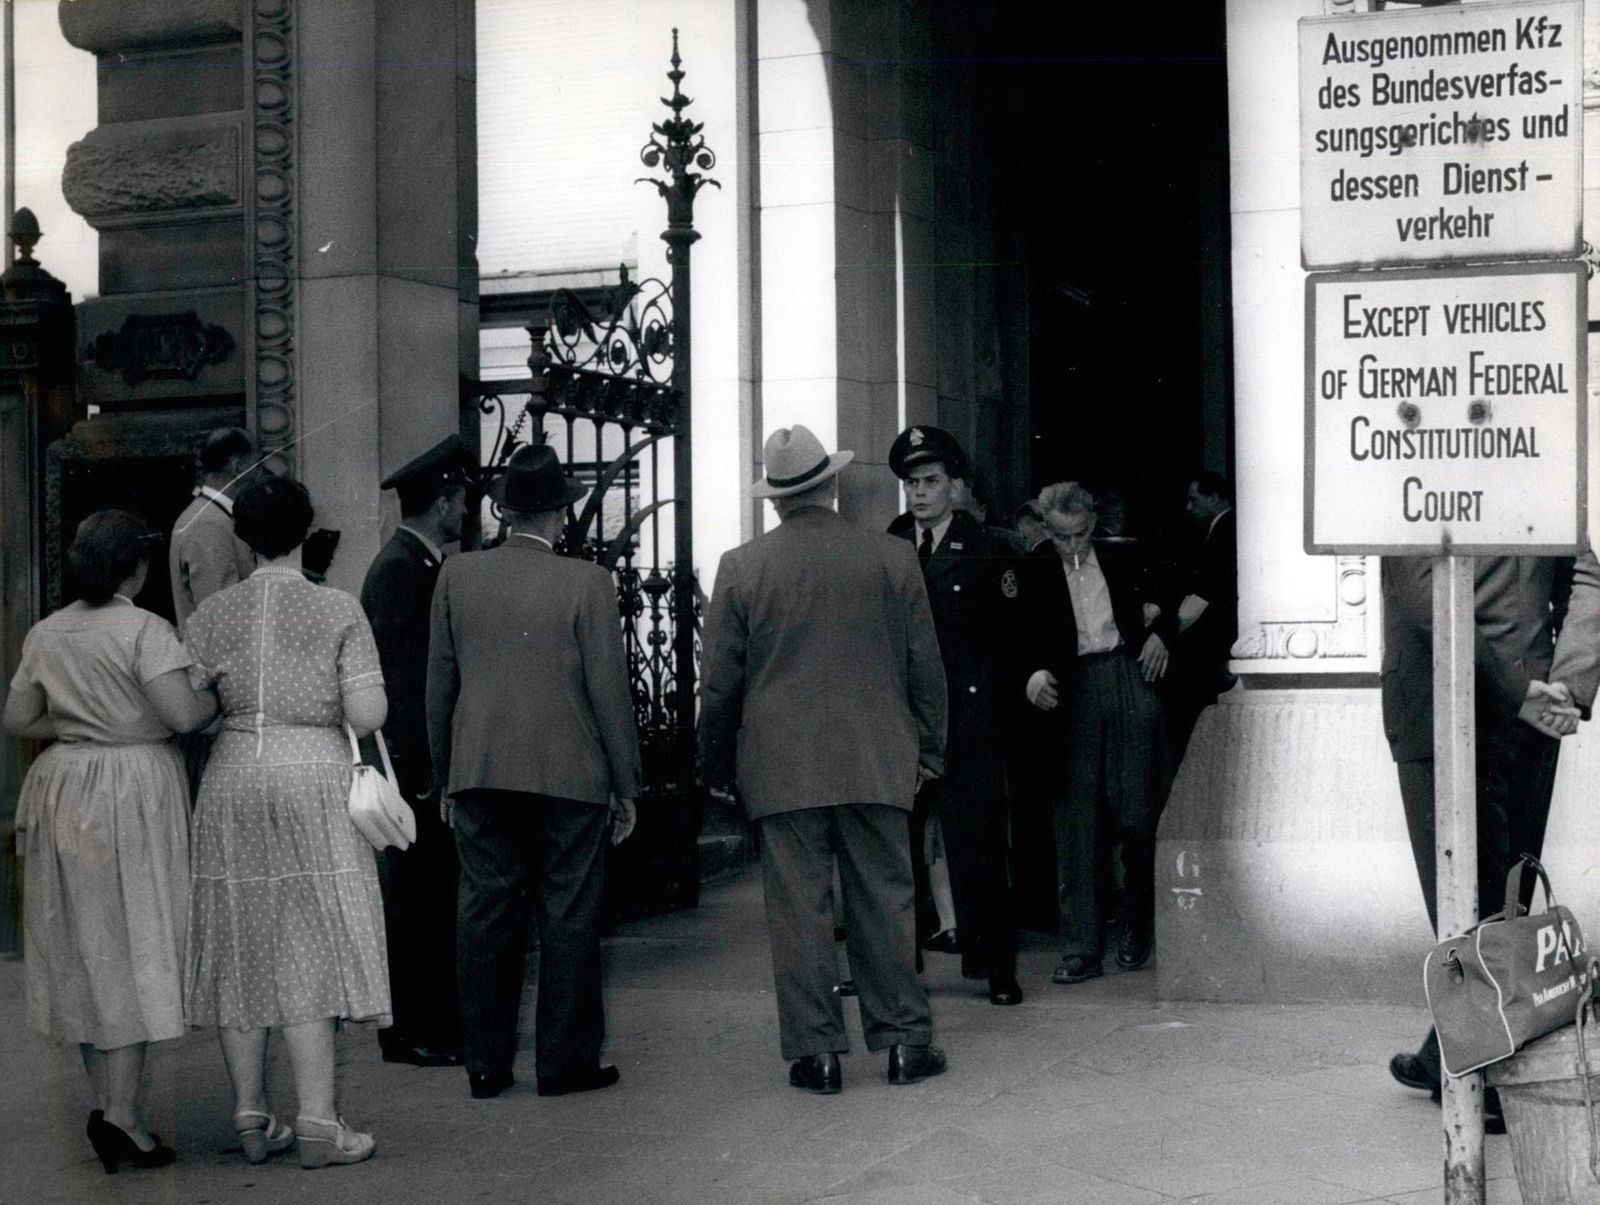 Aug 08 1956 German Communist Party Prohibited ââ?¬âÄ? Our photo shows a group of people trying